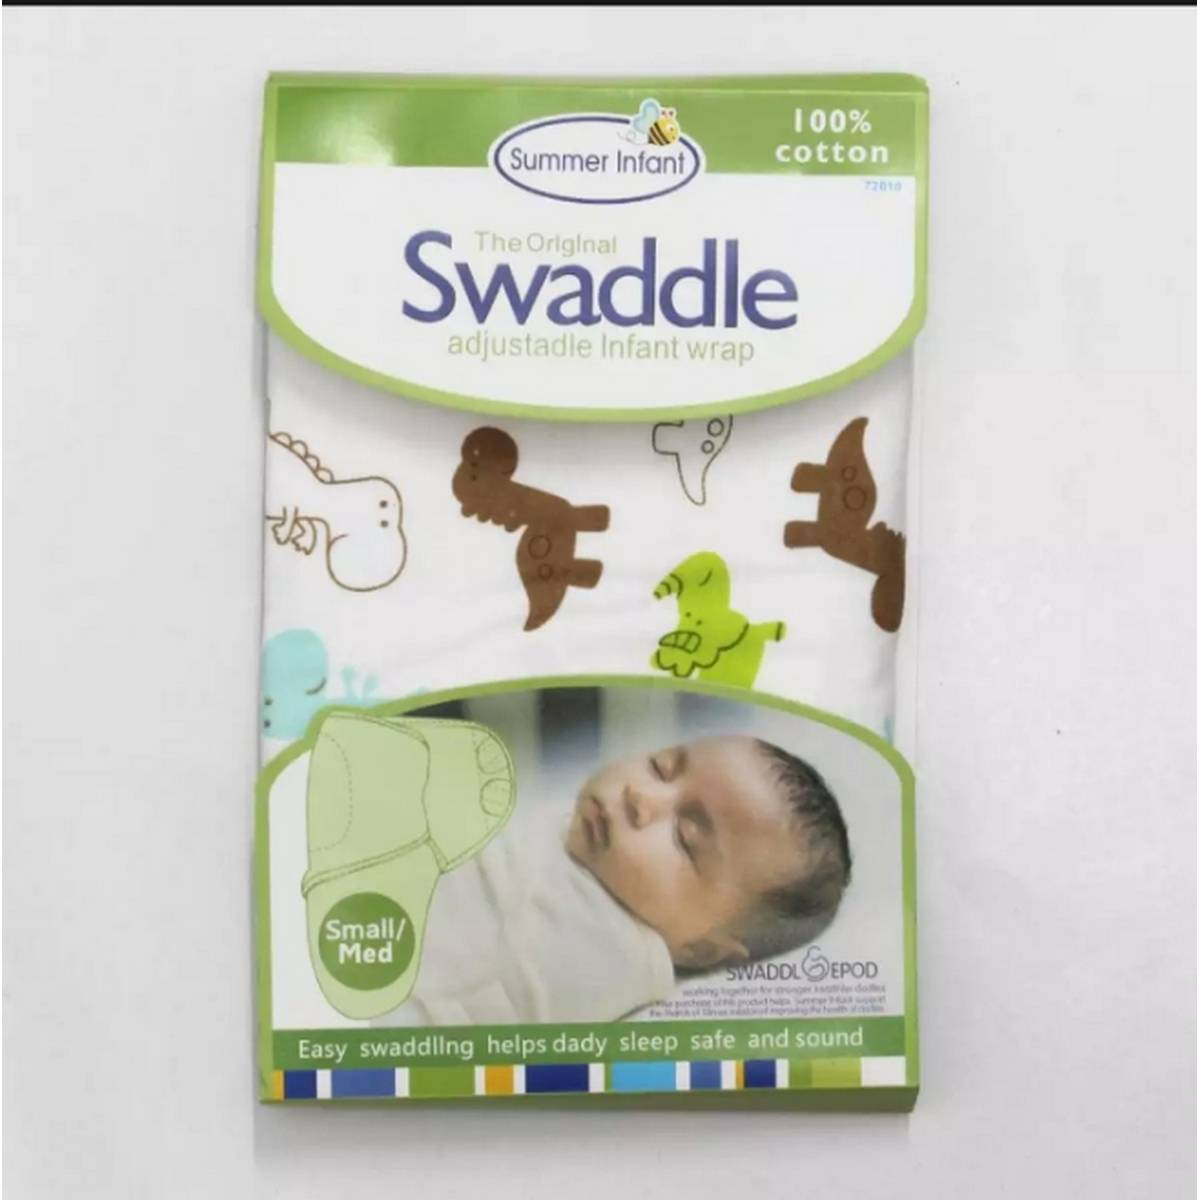 High Quality Super Soft 100% Cotton Swaddle Me Swaddle Ultra Comfort Adjustable/ Swaddle Infant Baby Wrap / Baby Swaddle Wrap/ New Born Baby Swaddle Wrap Swaddle Wrapping Sheet Baby blanket